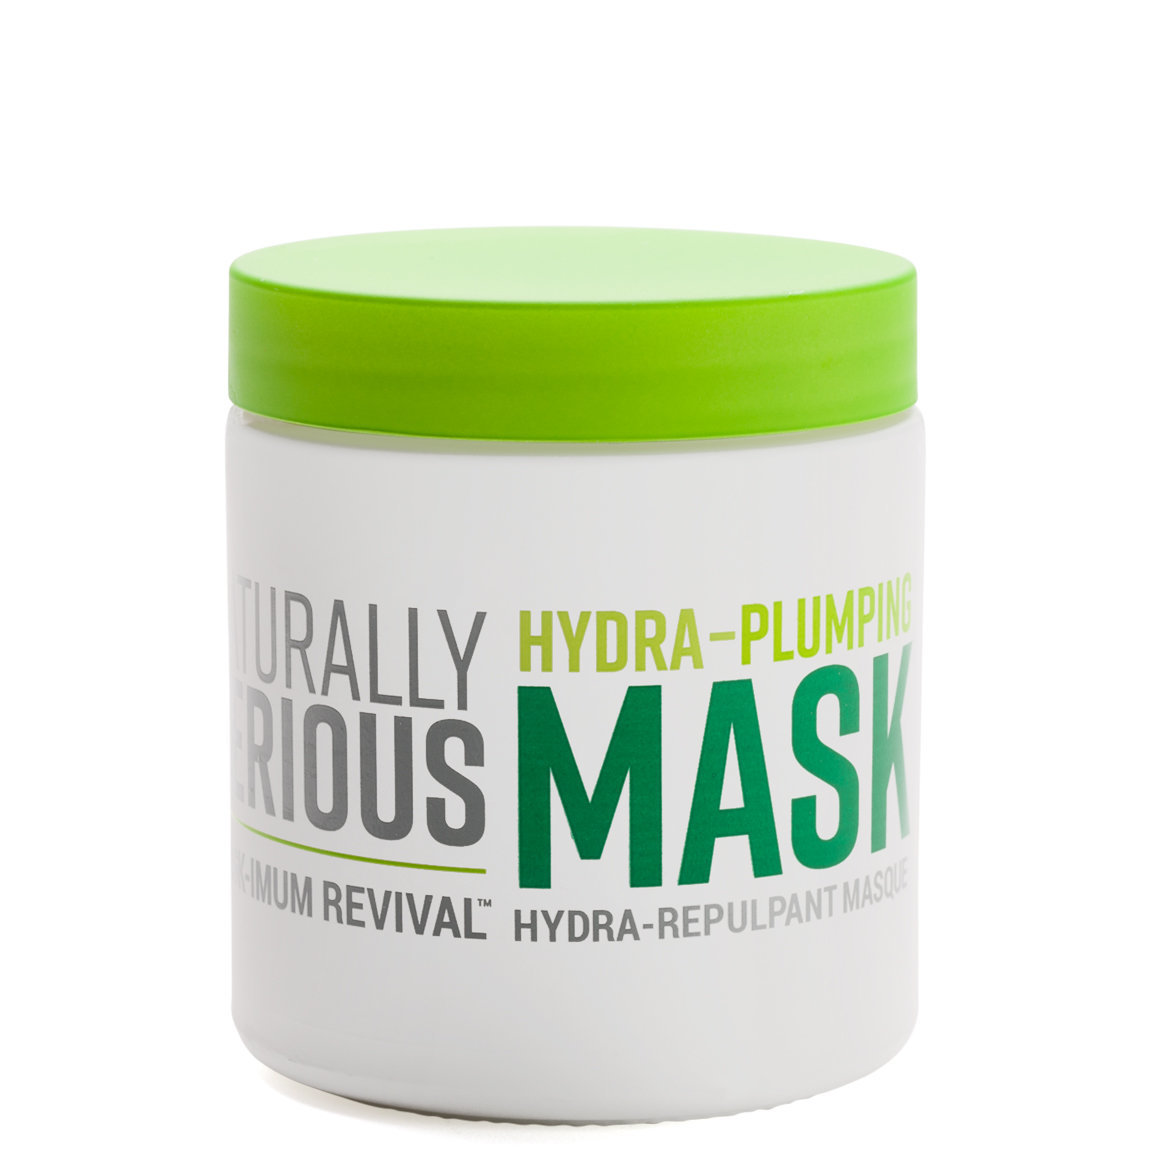 Naturally Serious Mask-imum Revival Hydra-Plumping Mask alternative view 1 - product swatch.